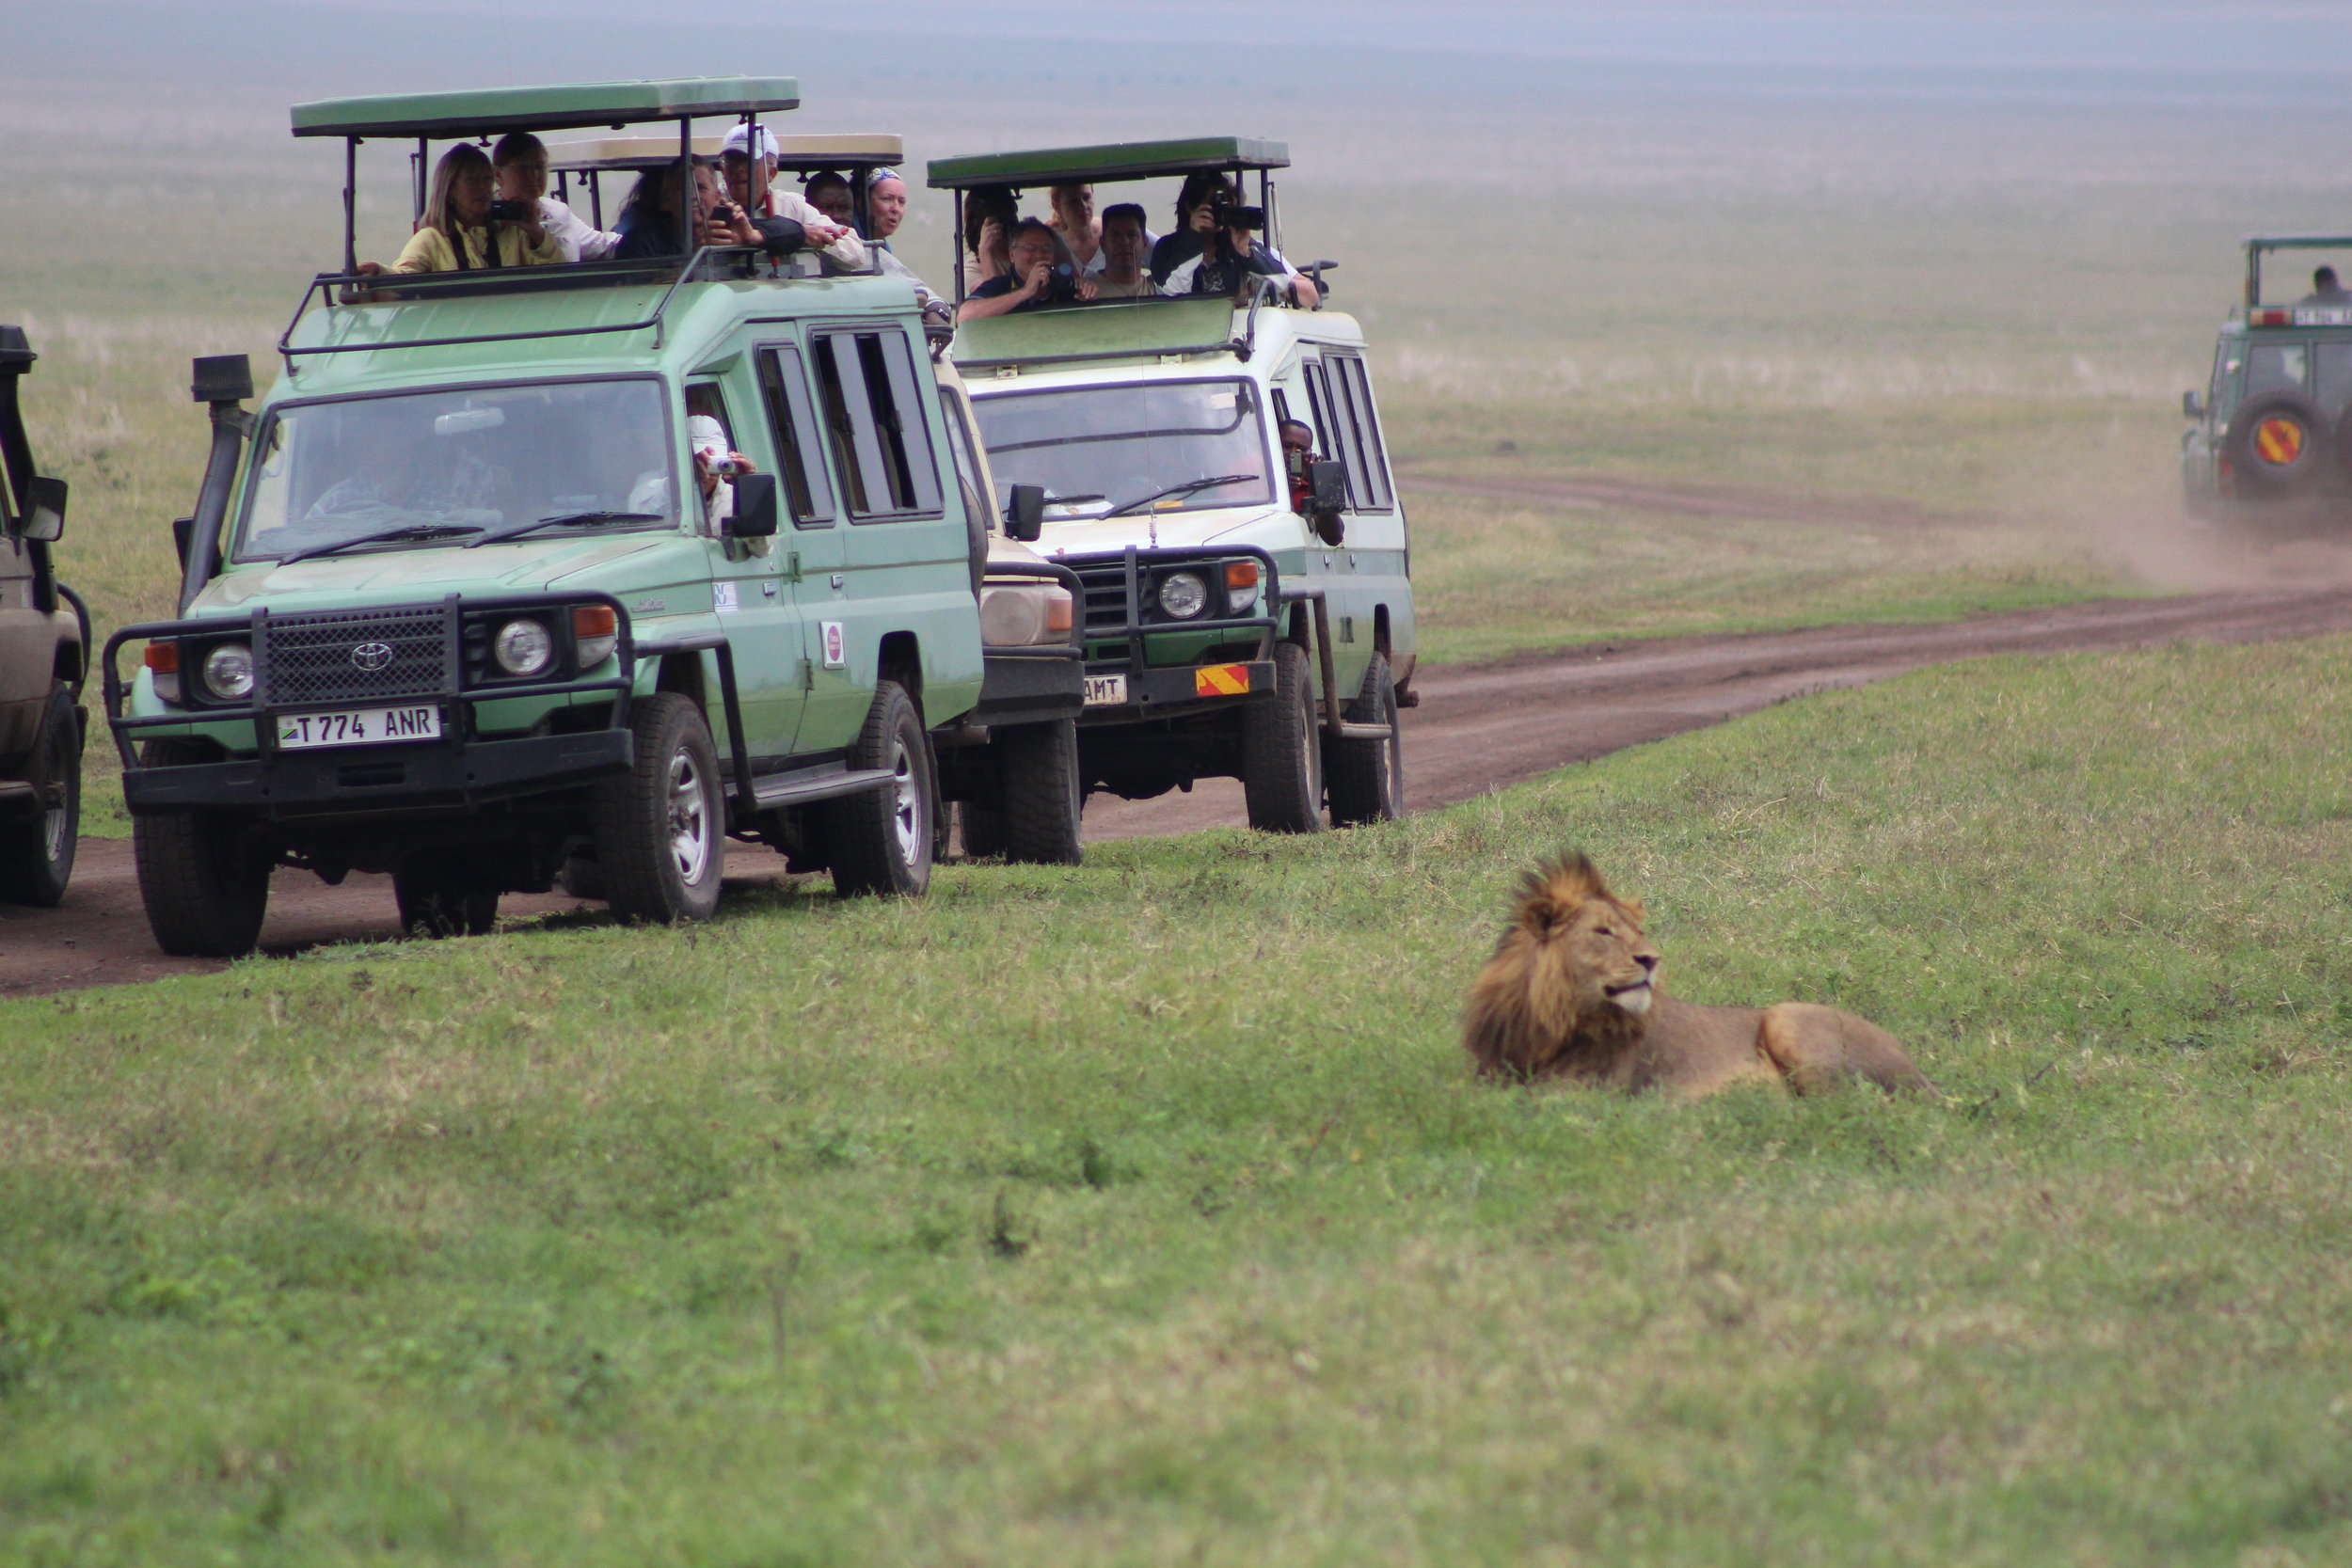 The lions were not phased by the safari vehicles!